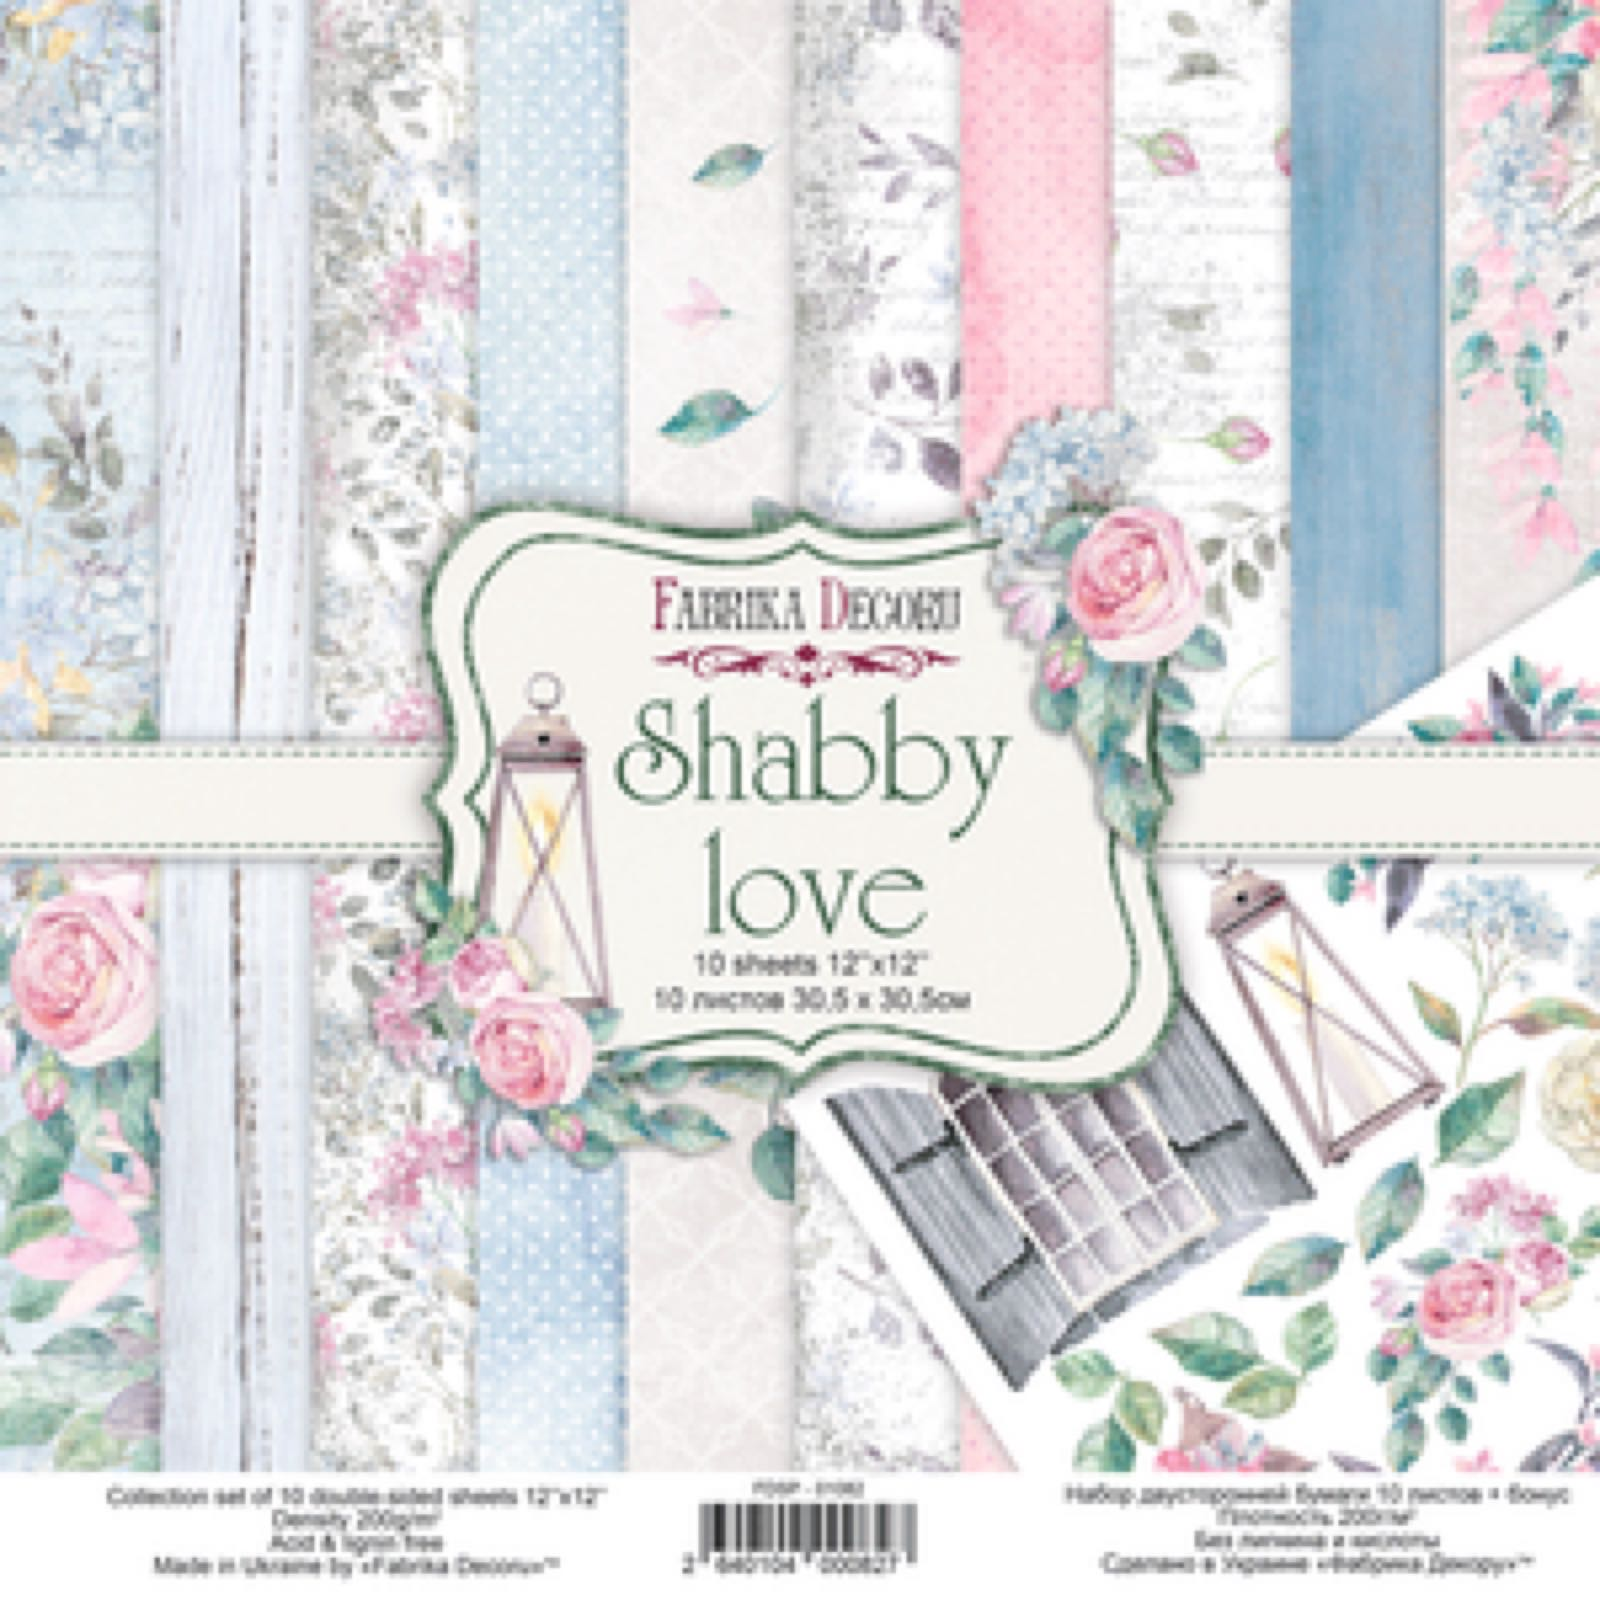 Fabrika decoru 12x12, Shabby love collection paper pack   FDSP-01082